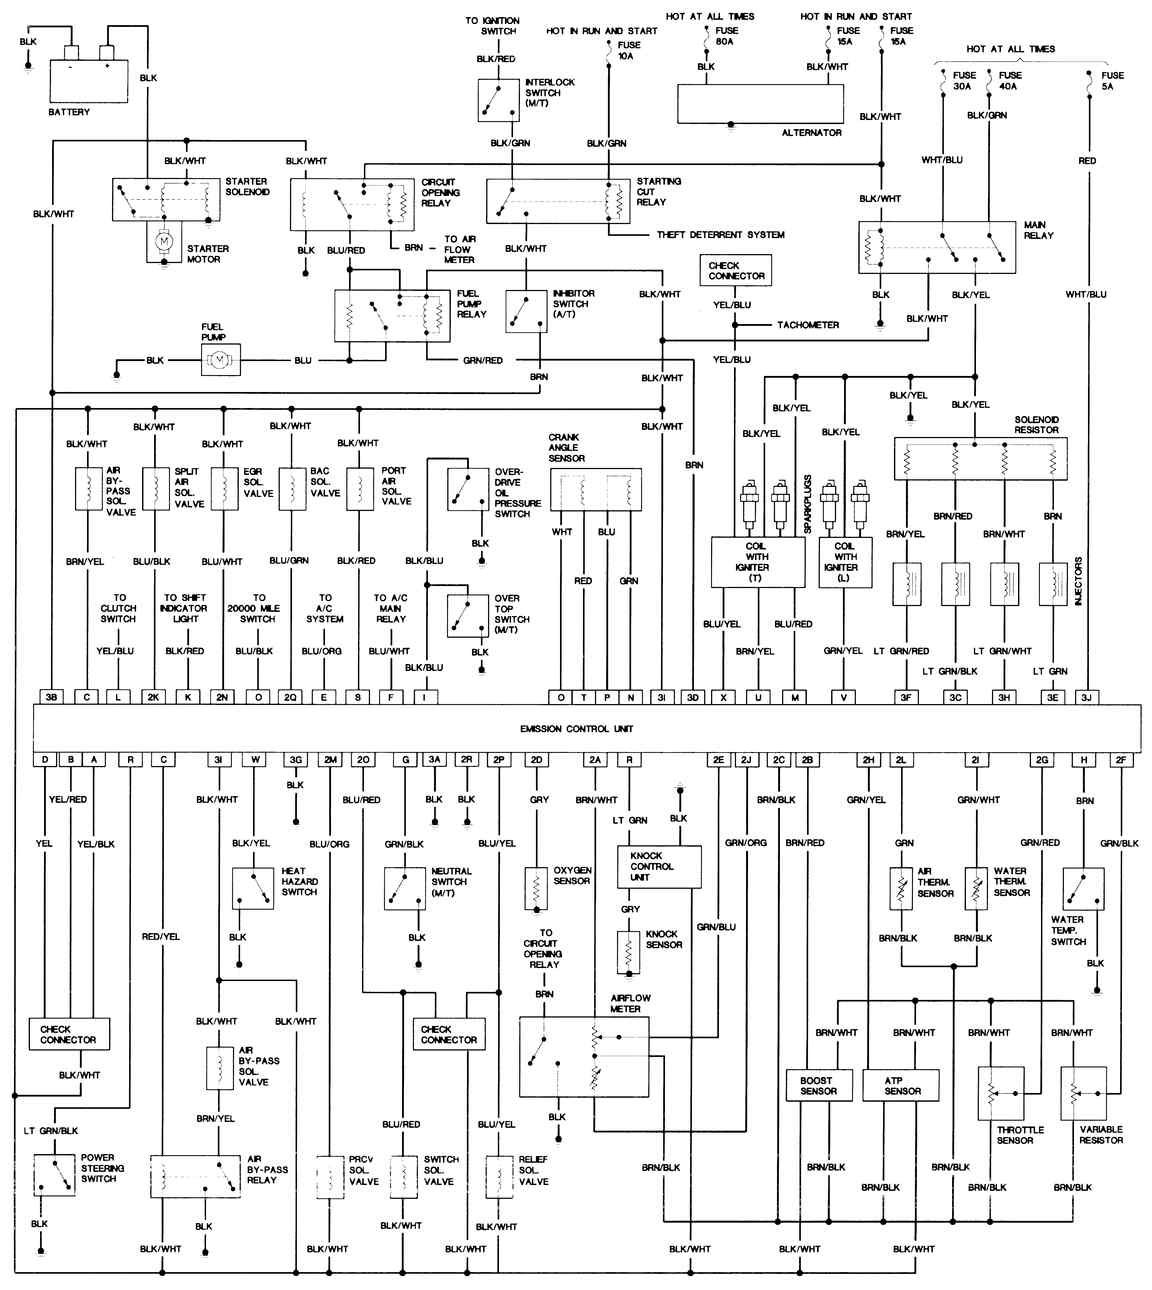 rx7 wiring diagram yorkromanfestival co uk 2011 Mazda 3 Wiring Diagram rx7 wiring diagram